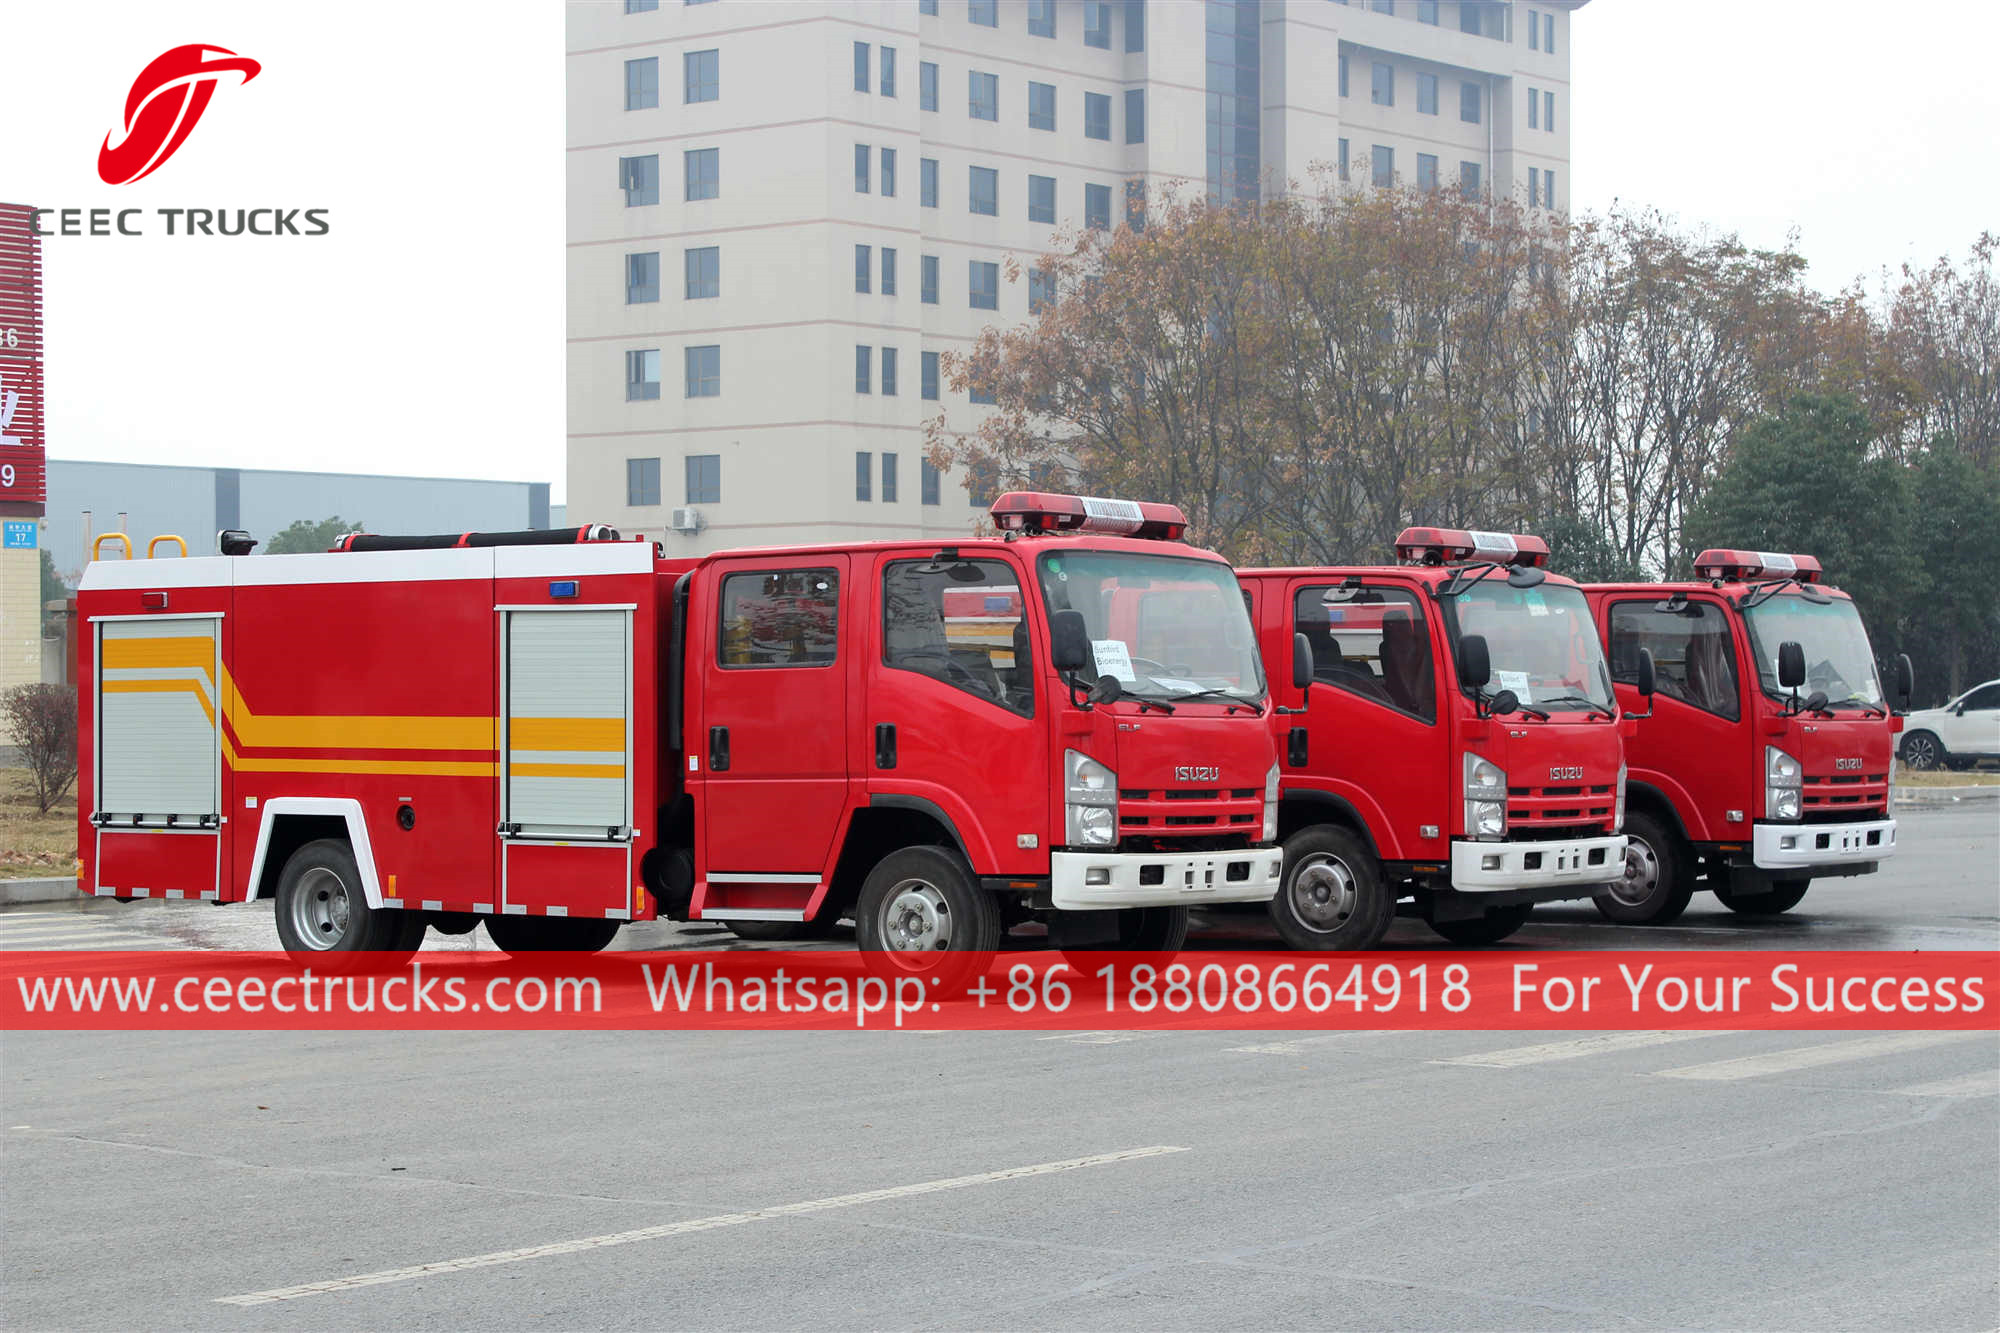 3 units ISUZU Fire rescue trucks were delivered